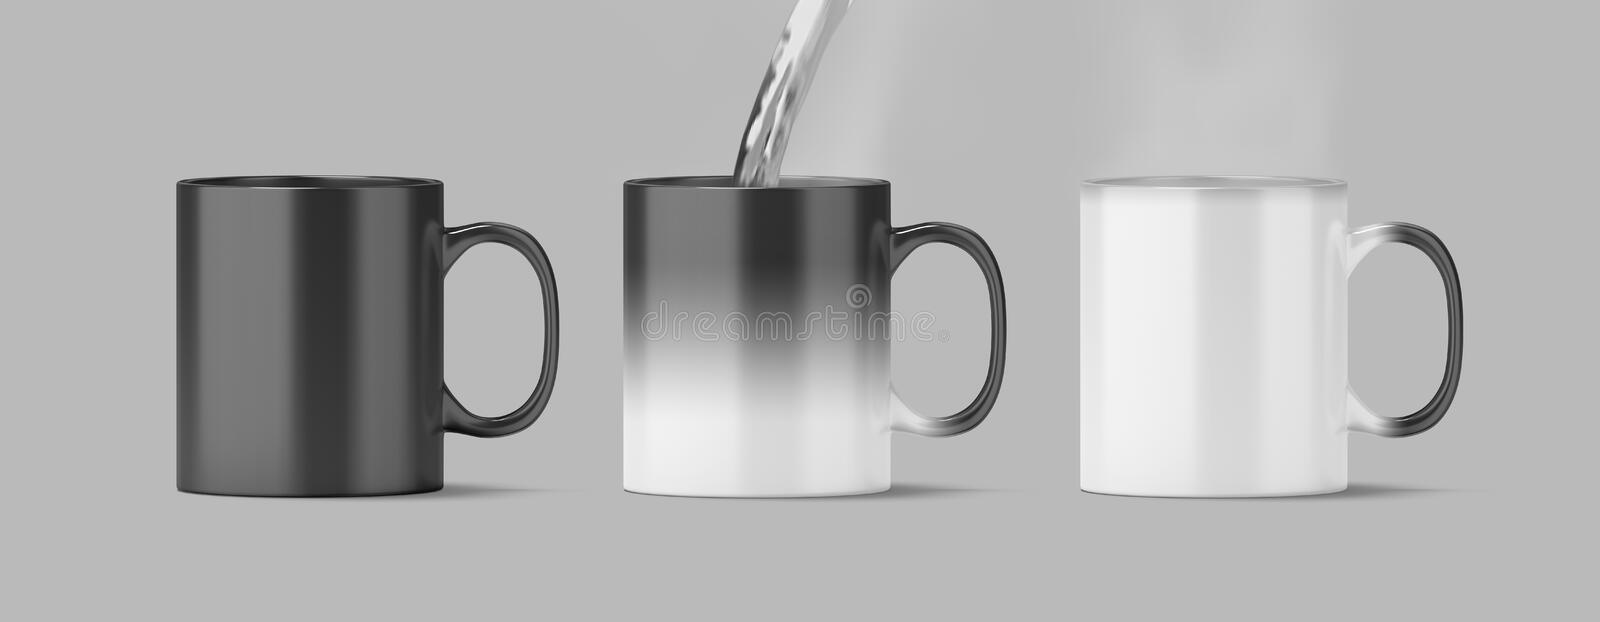 Blank magic mug mock up isolated, cold and hot state, royalty free stock photos